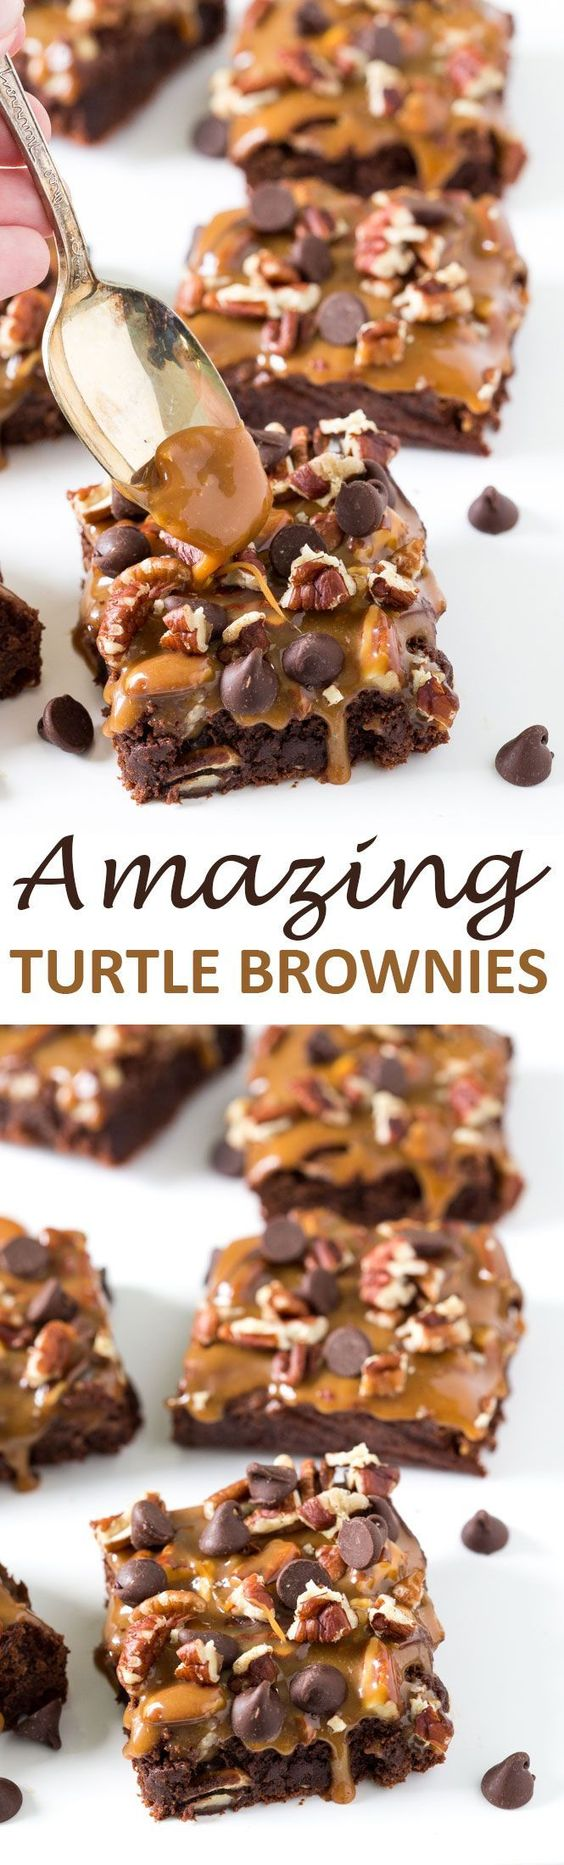 Amazing Thick and Fudgey Turtle Brownies layered with caramel sauce, pecans and…